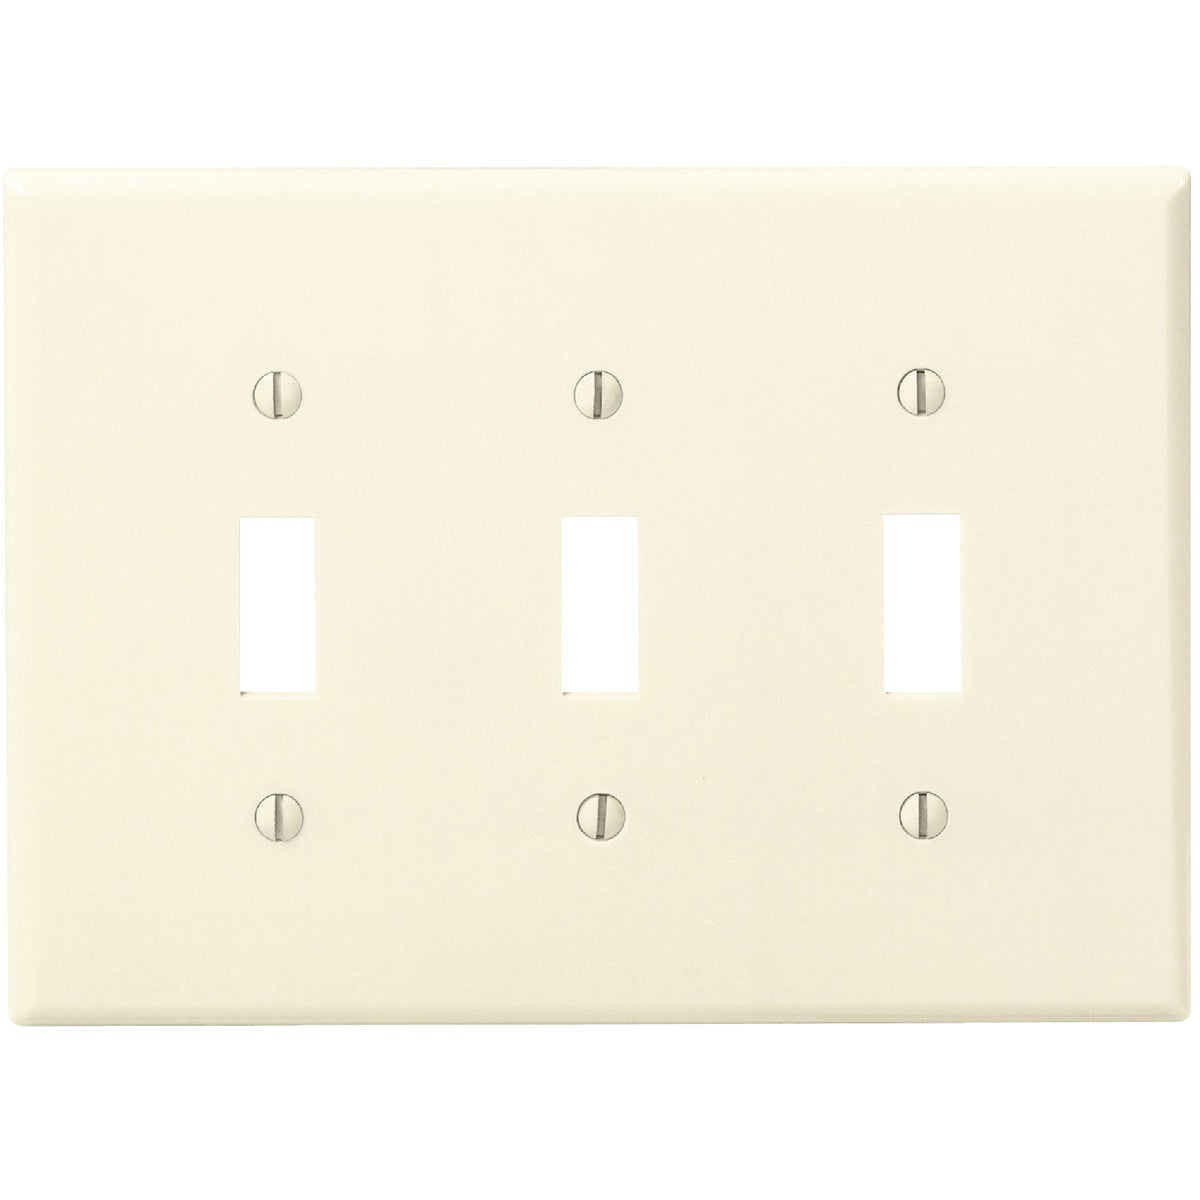 IV 3-TOGGLE WALL PLATE - 80511I by Leviton Mfg Co